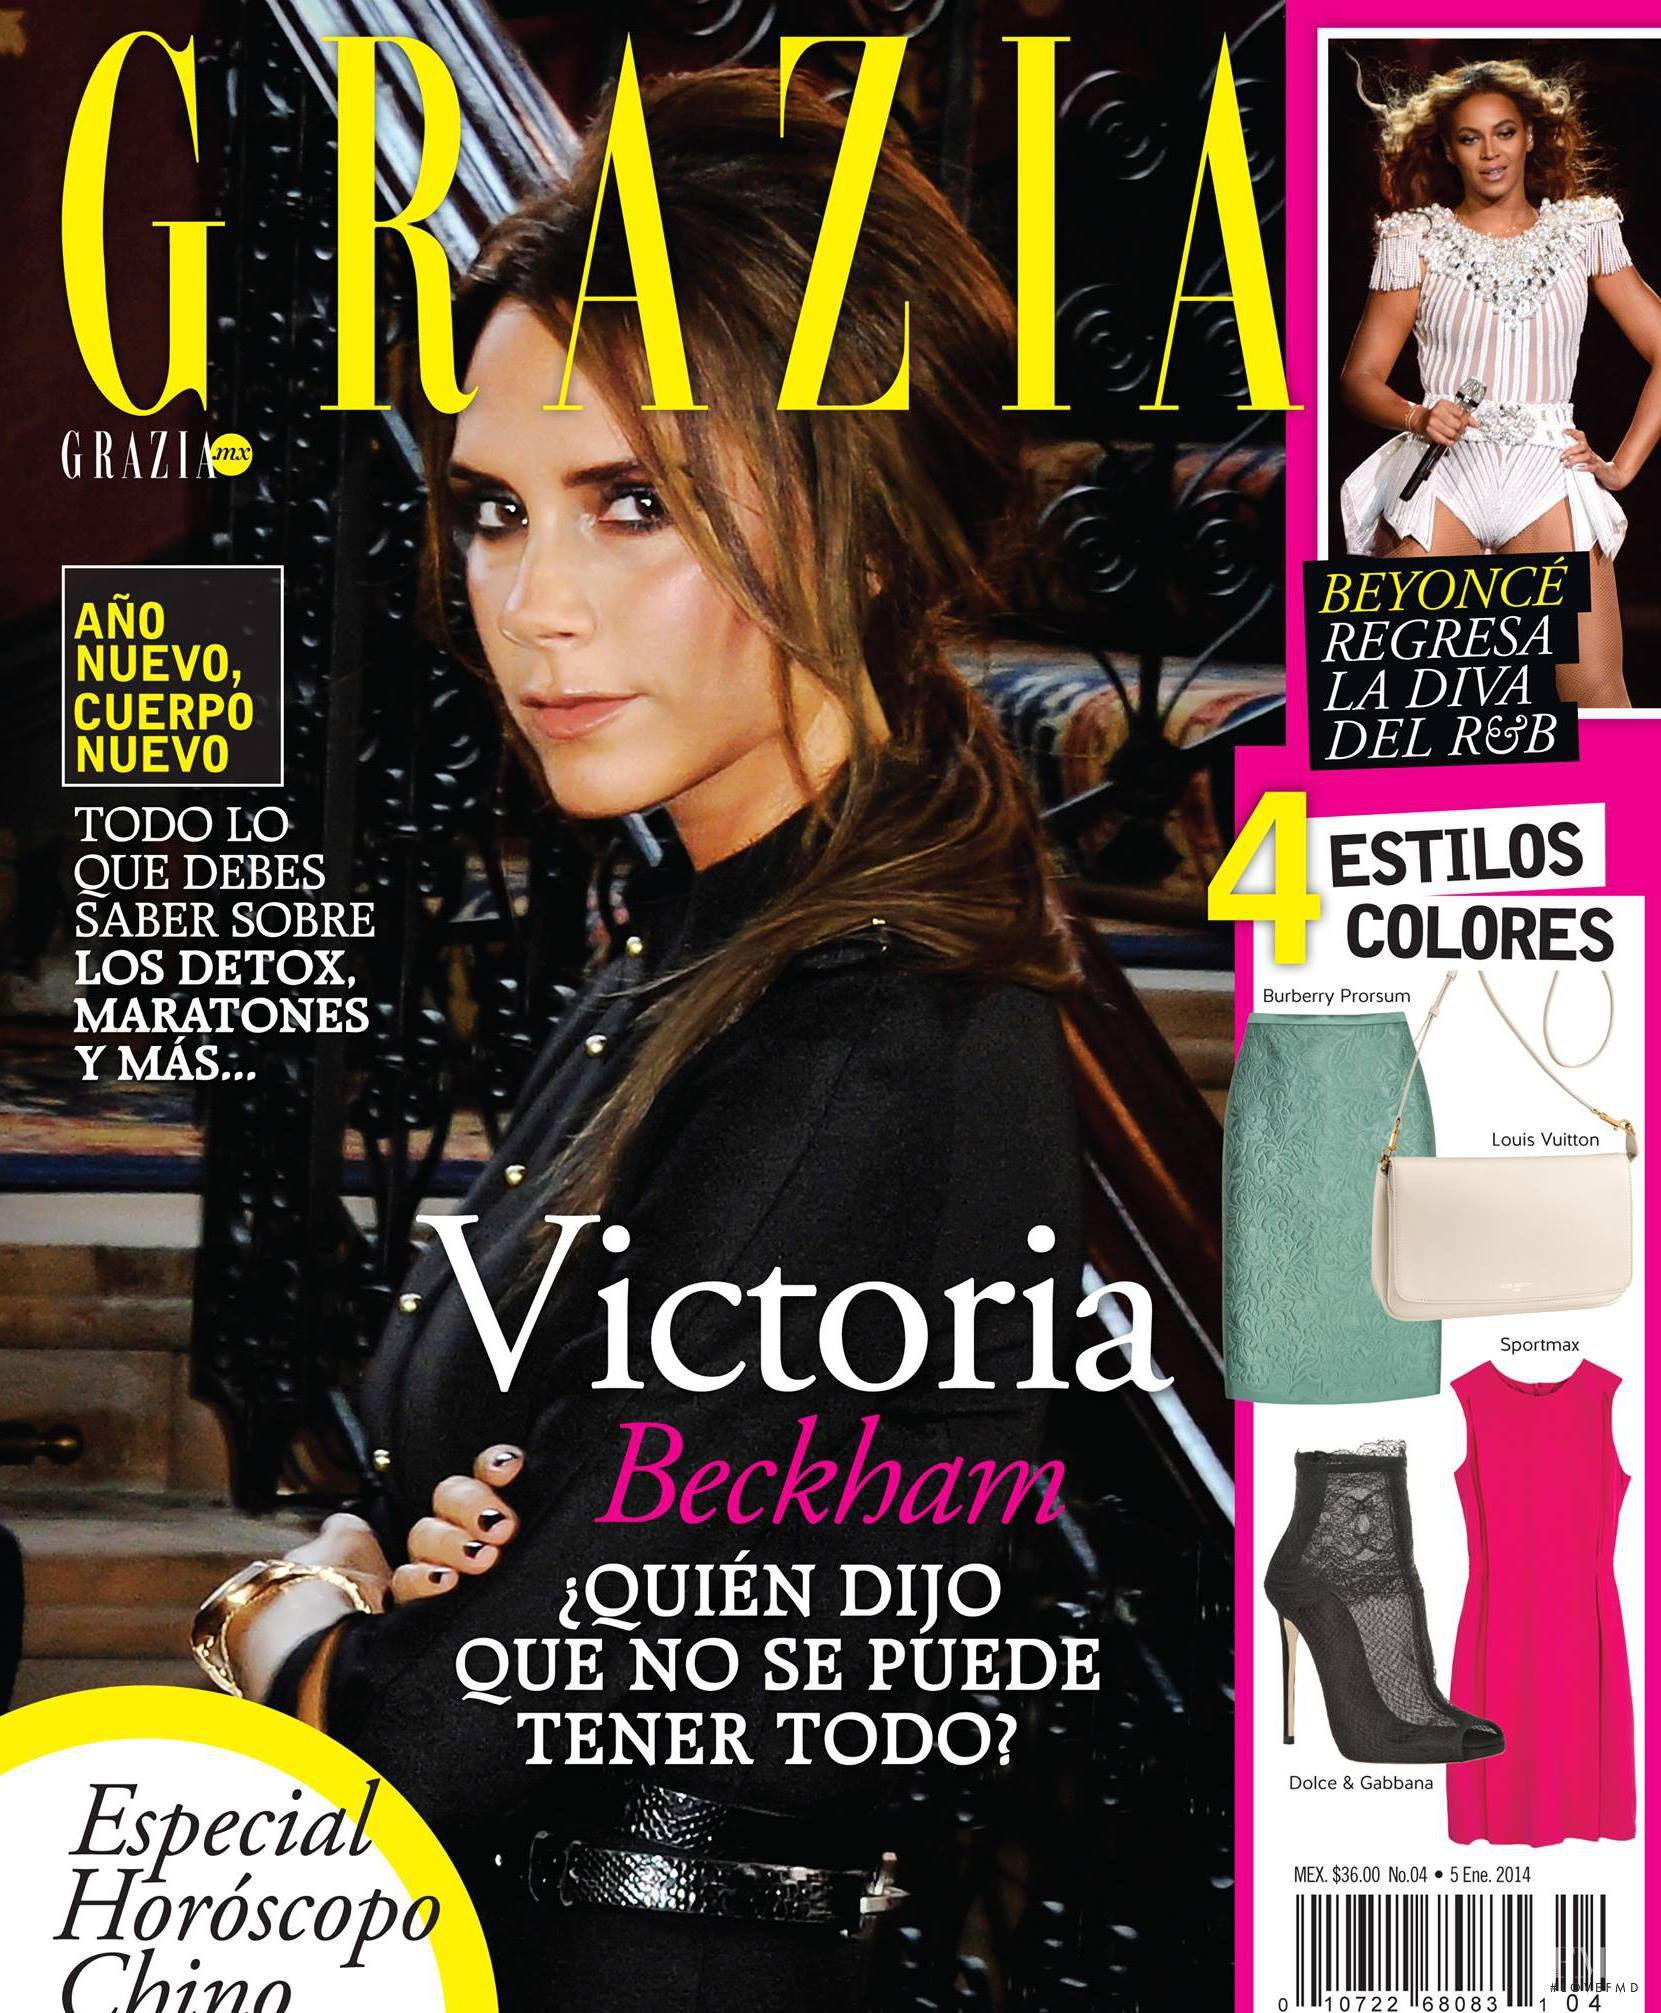 Cover of Grazia Mexico with Victoria Beckham, January 2014